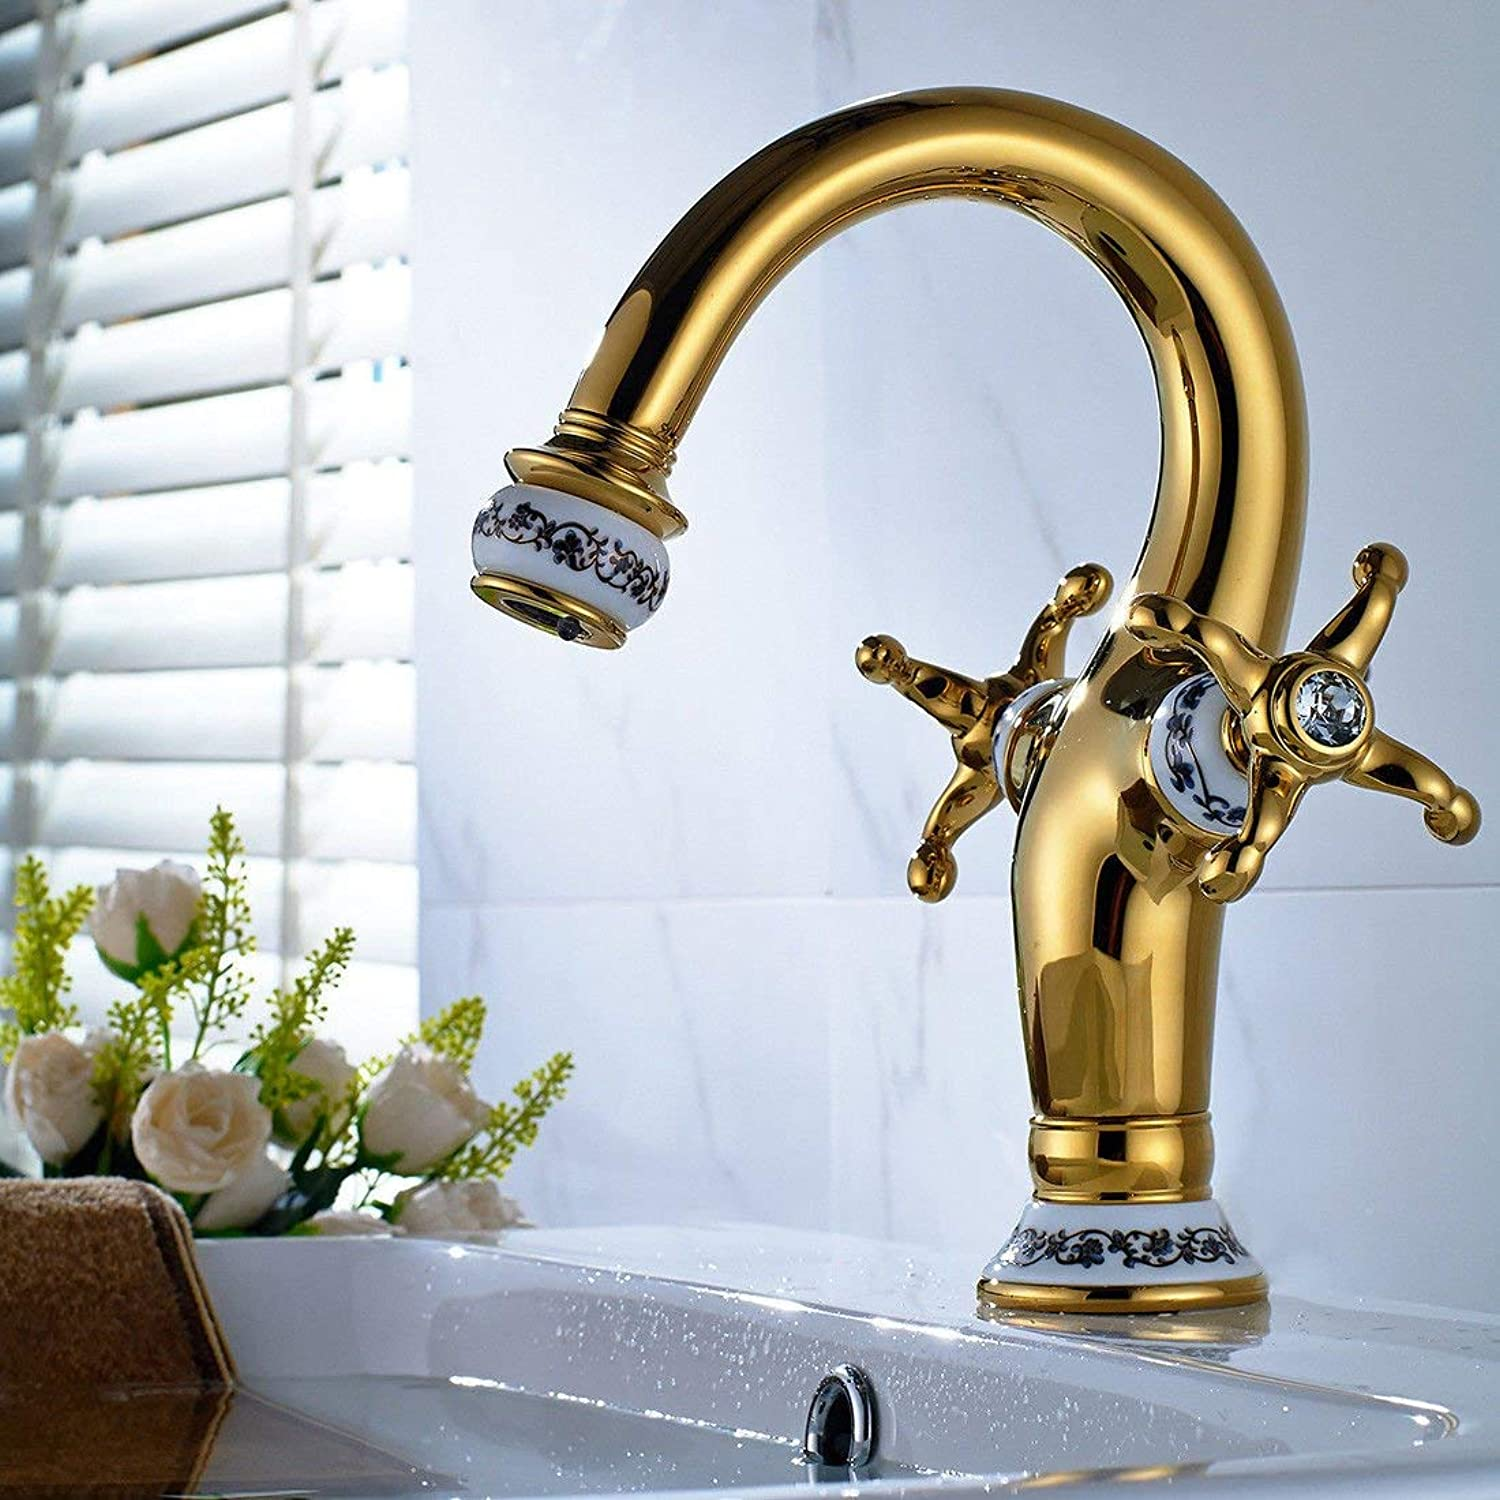 WMING HOME Sink Mixer Tap Bathroom Kitchen Basin Tap Leakproof Save Water Brass gold Plated bluee Led With Both Hands Cold Water golden Kitchen